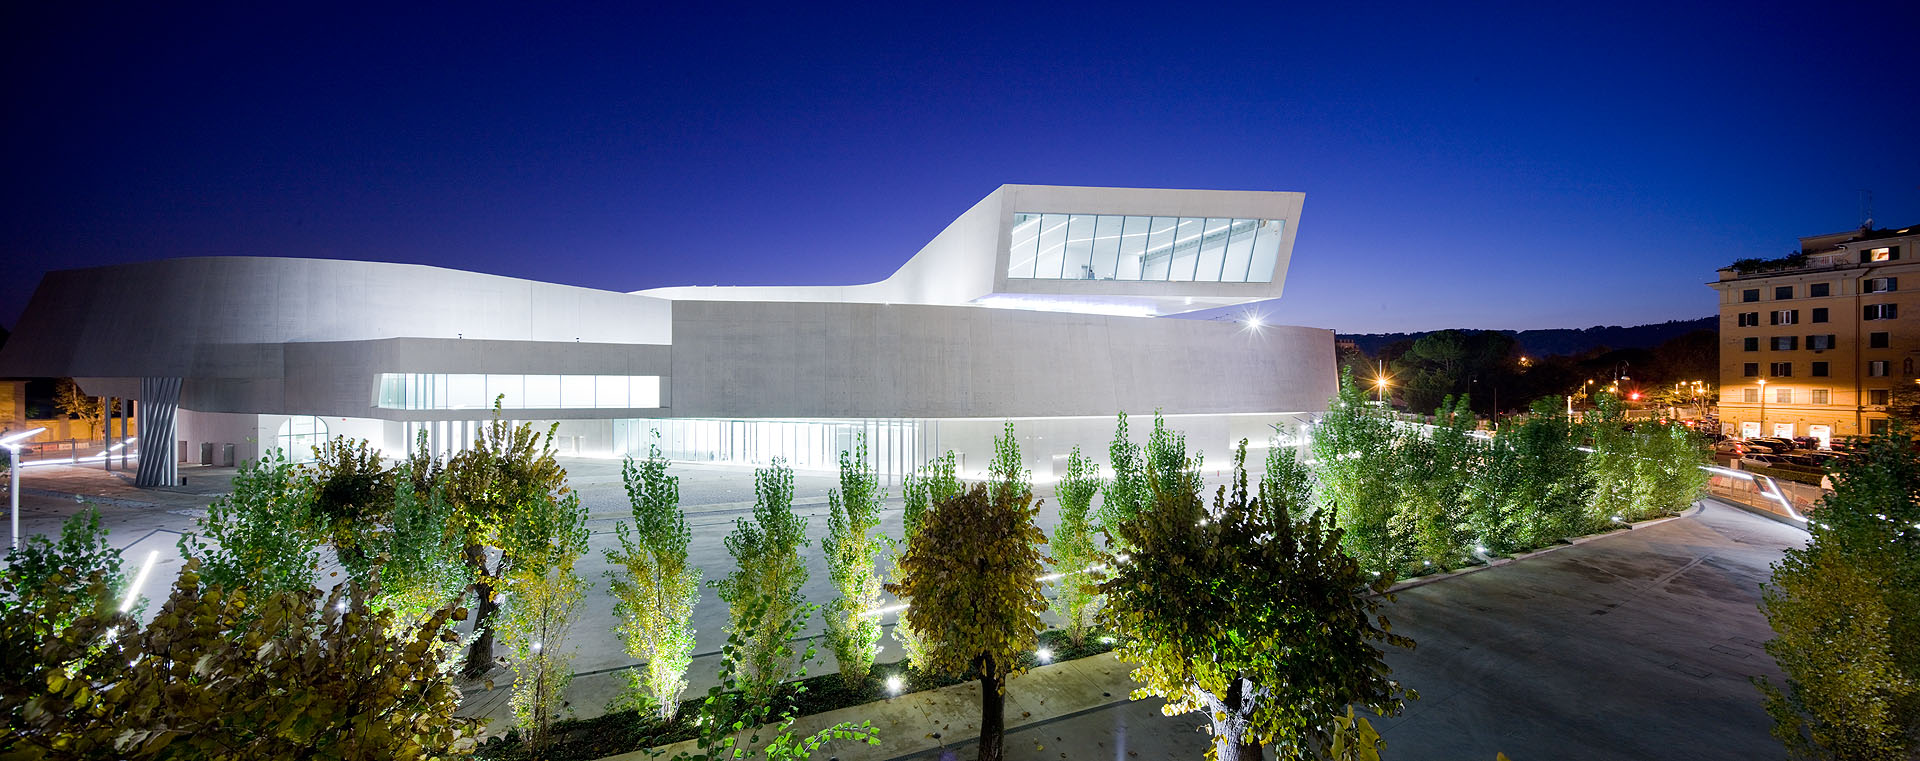 Exterior of Zaha Hadid's MAXXI - National Museum of XXI Century Arts